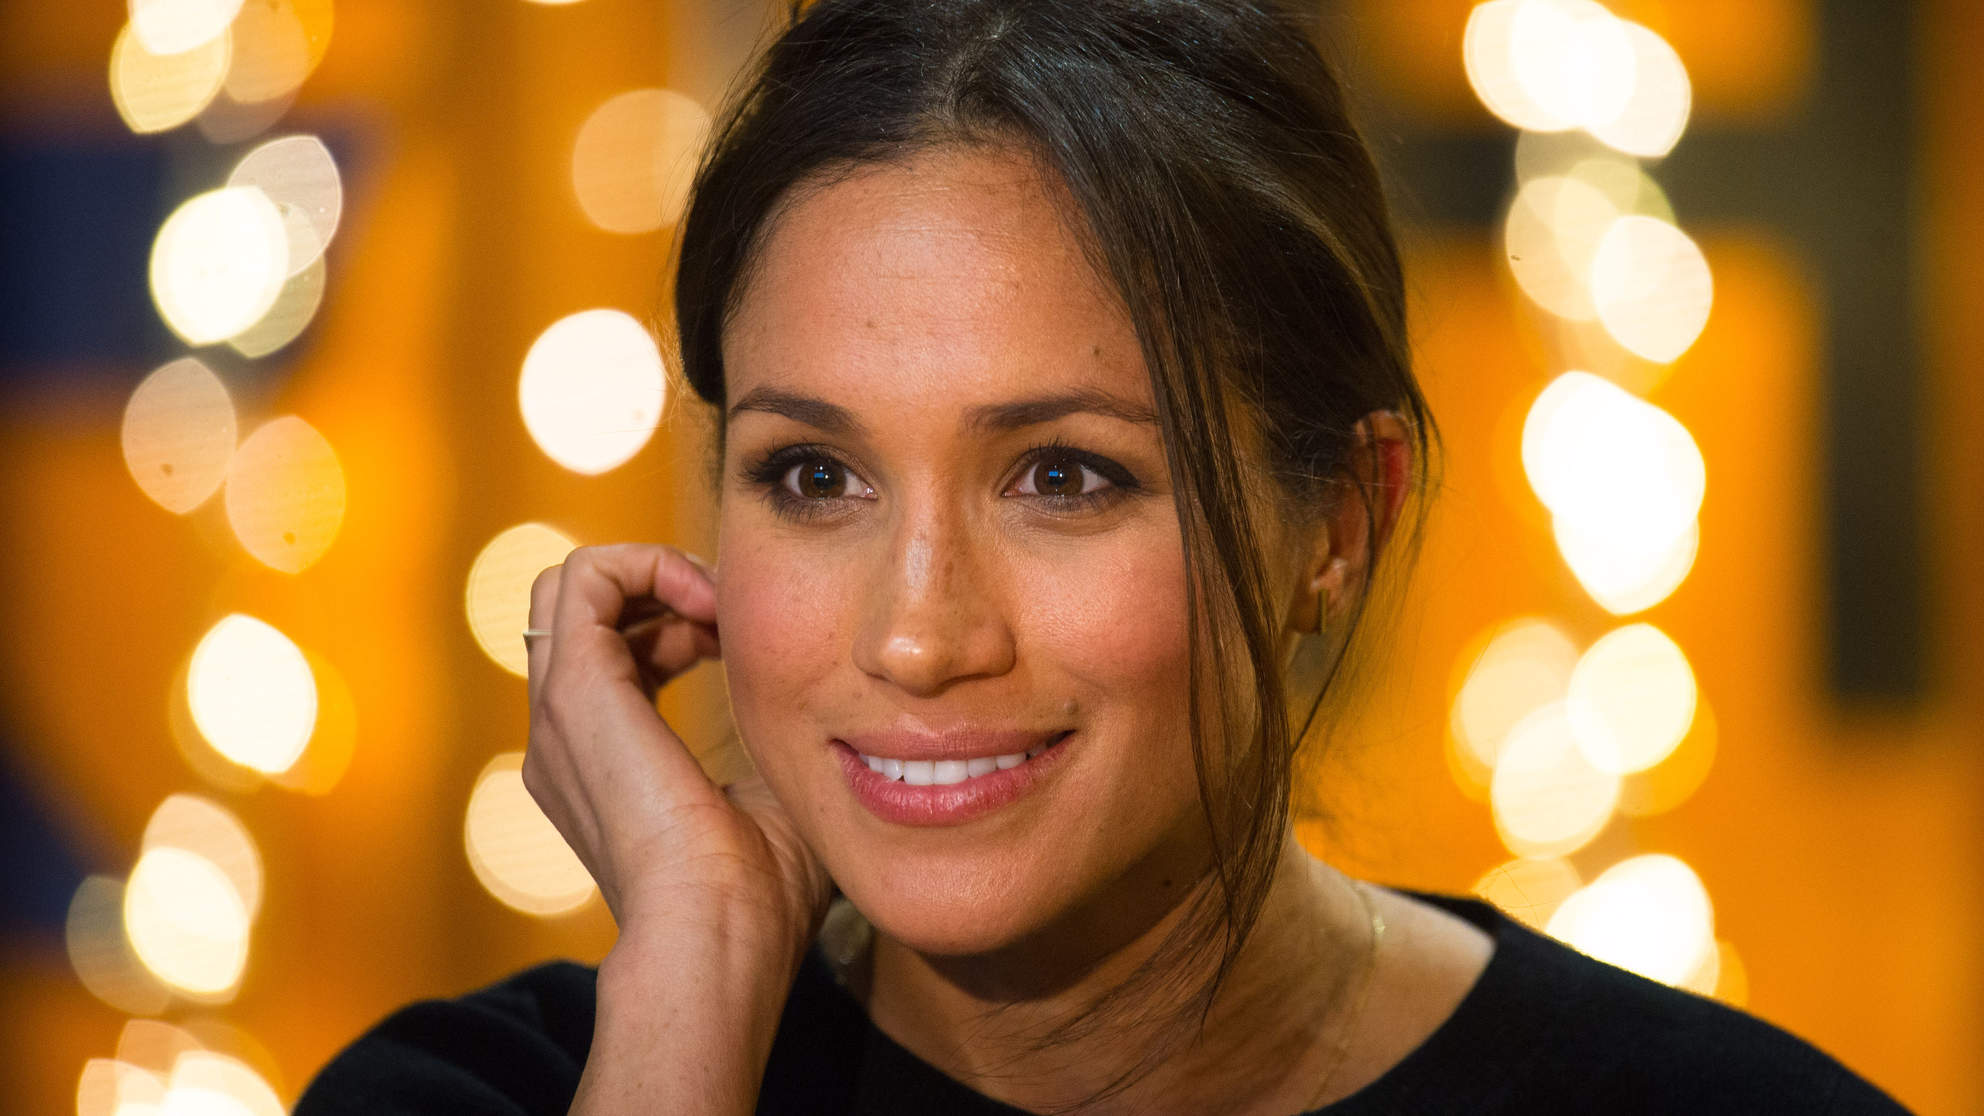 Where to Buy Meghan Markle's Sleek Coat, Welsh Jeans and Super Cute Bag from Her Visit to Wales!